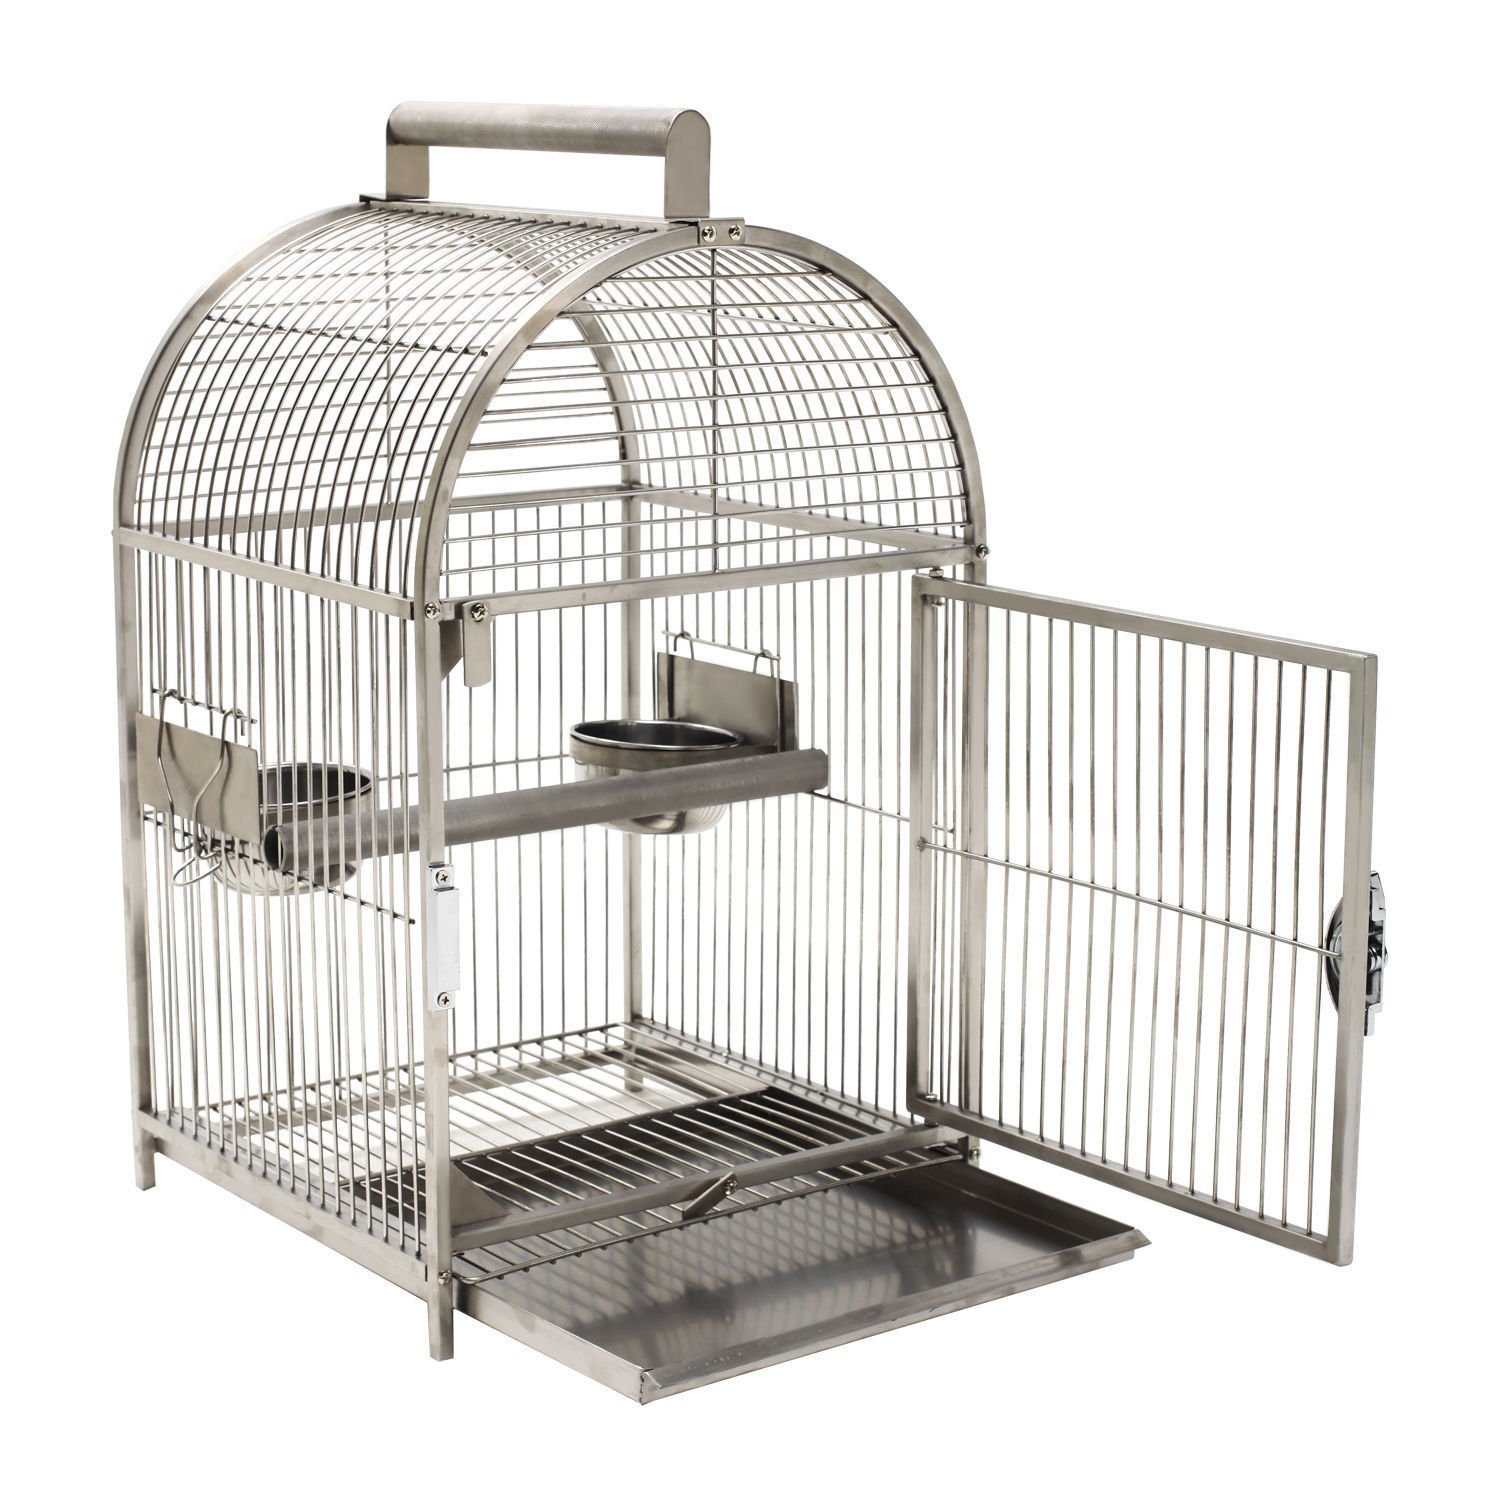 Cages New Portable Bird Carrier Cockatiel Parrot Macaws Travel Stainless Steel by Cages